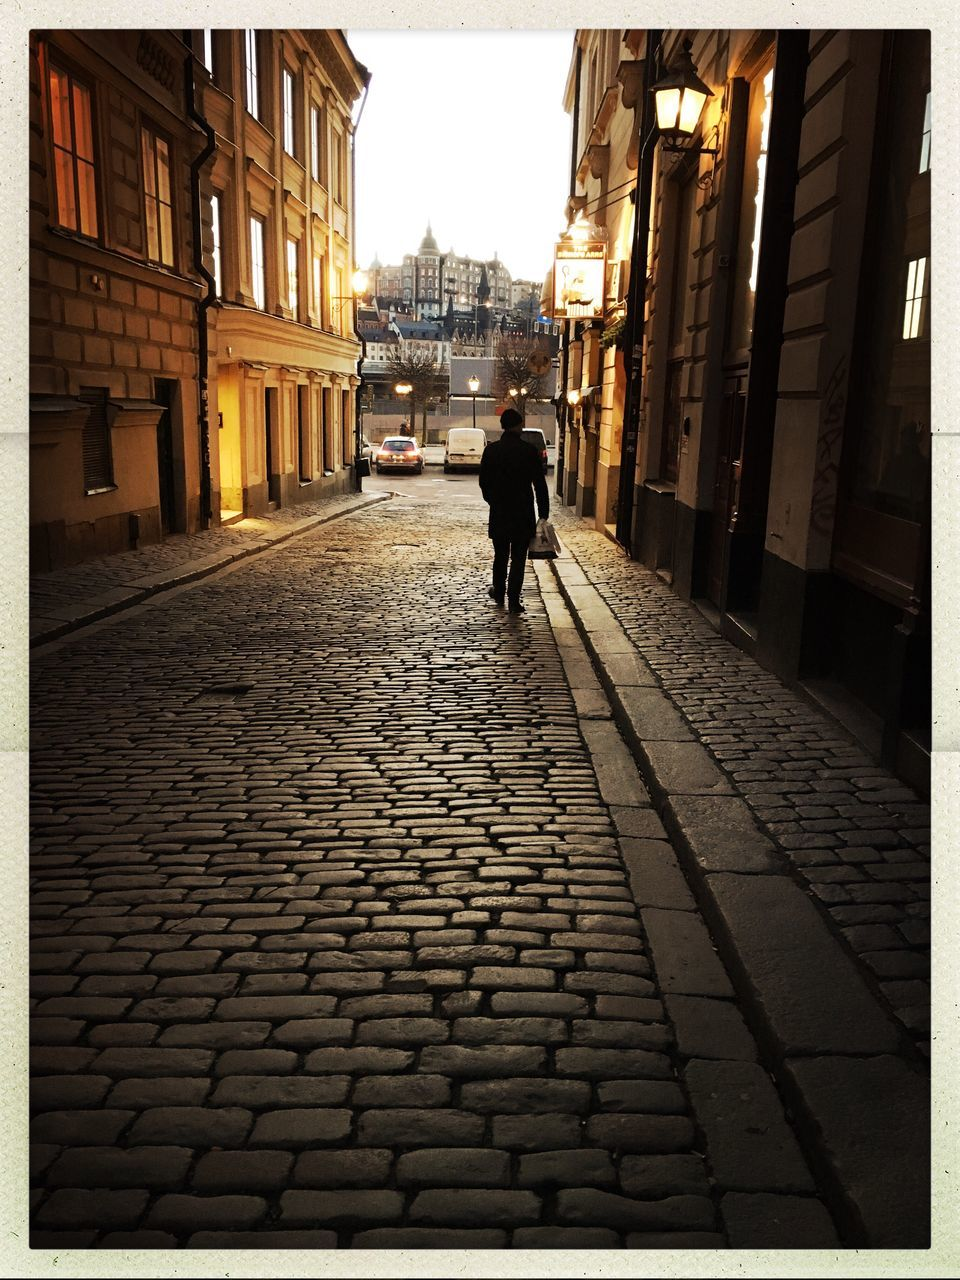 architecture, built structure, building exterior, full length, real people, cobblestone, walking, one person, men, the way forward, outdoors, city, day, adult, people